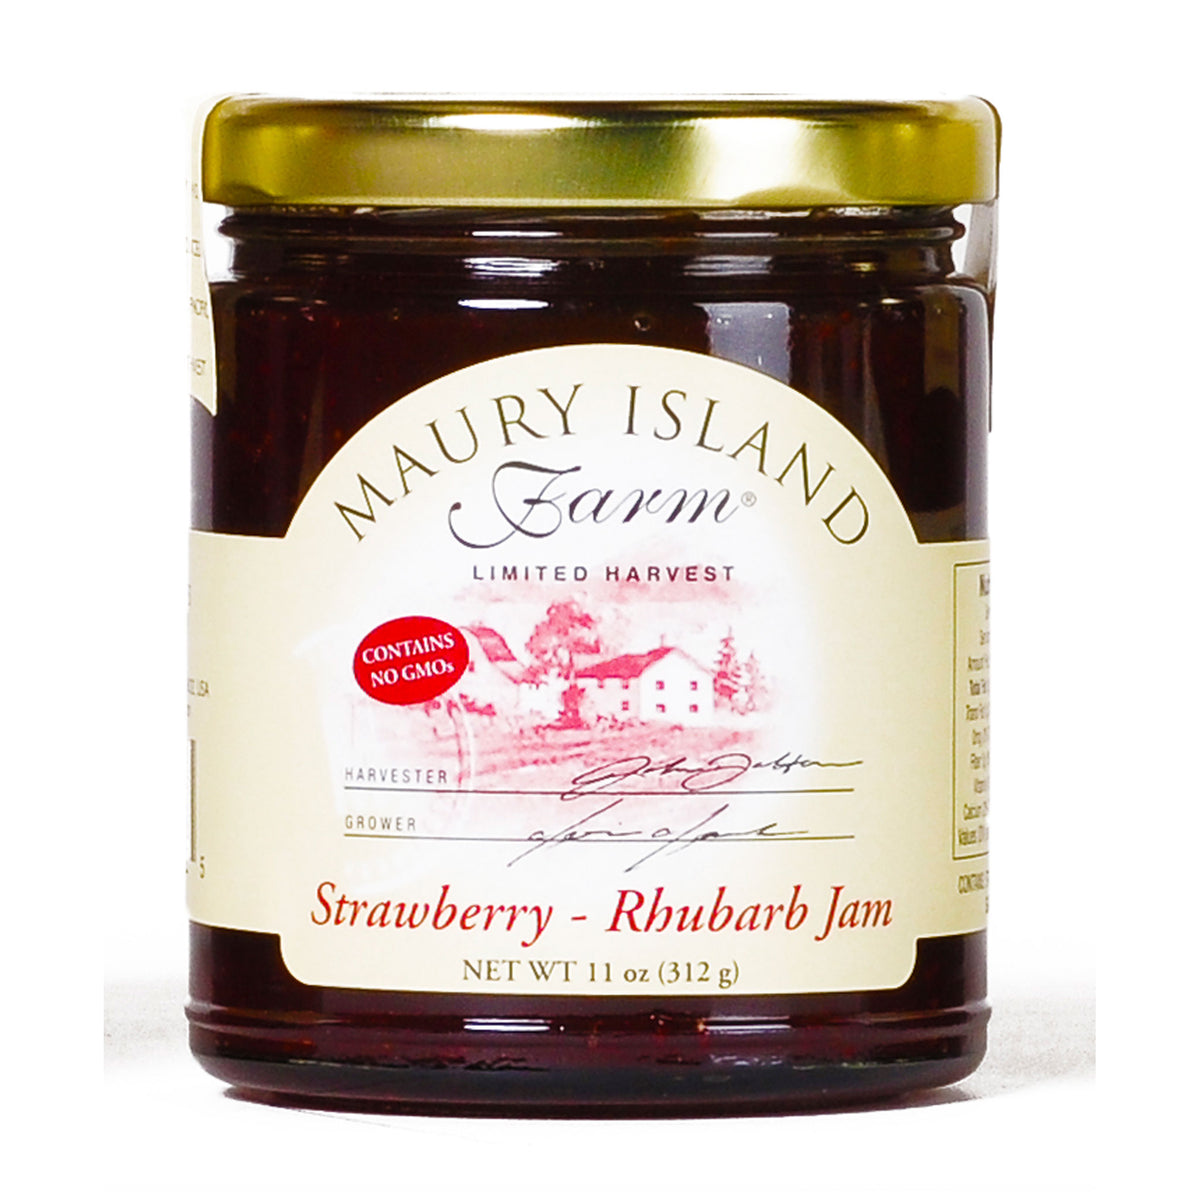 Maury Island Farm Limited harvest Strawberry-Rhubarb Jam 11-Ounce Glass Jars Contains No GMOs